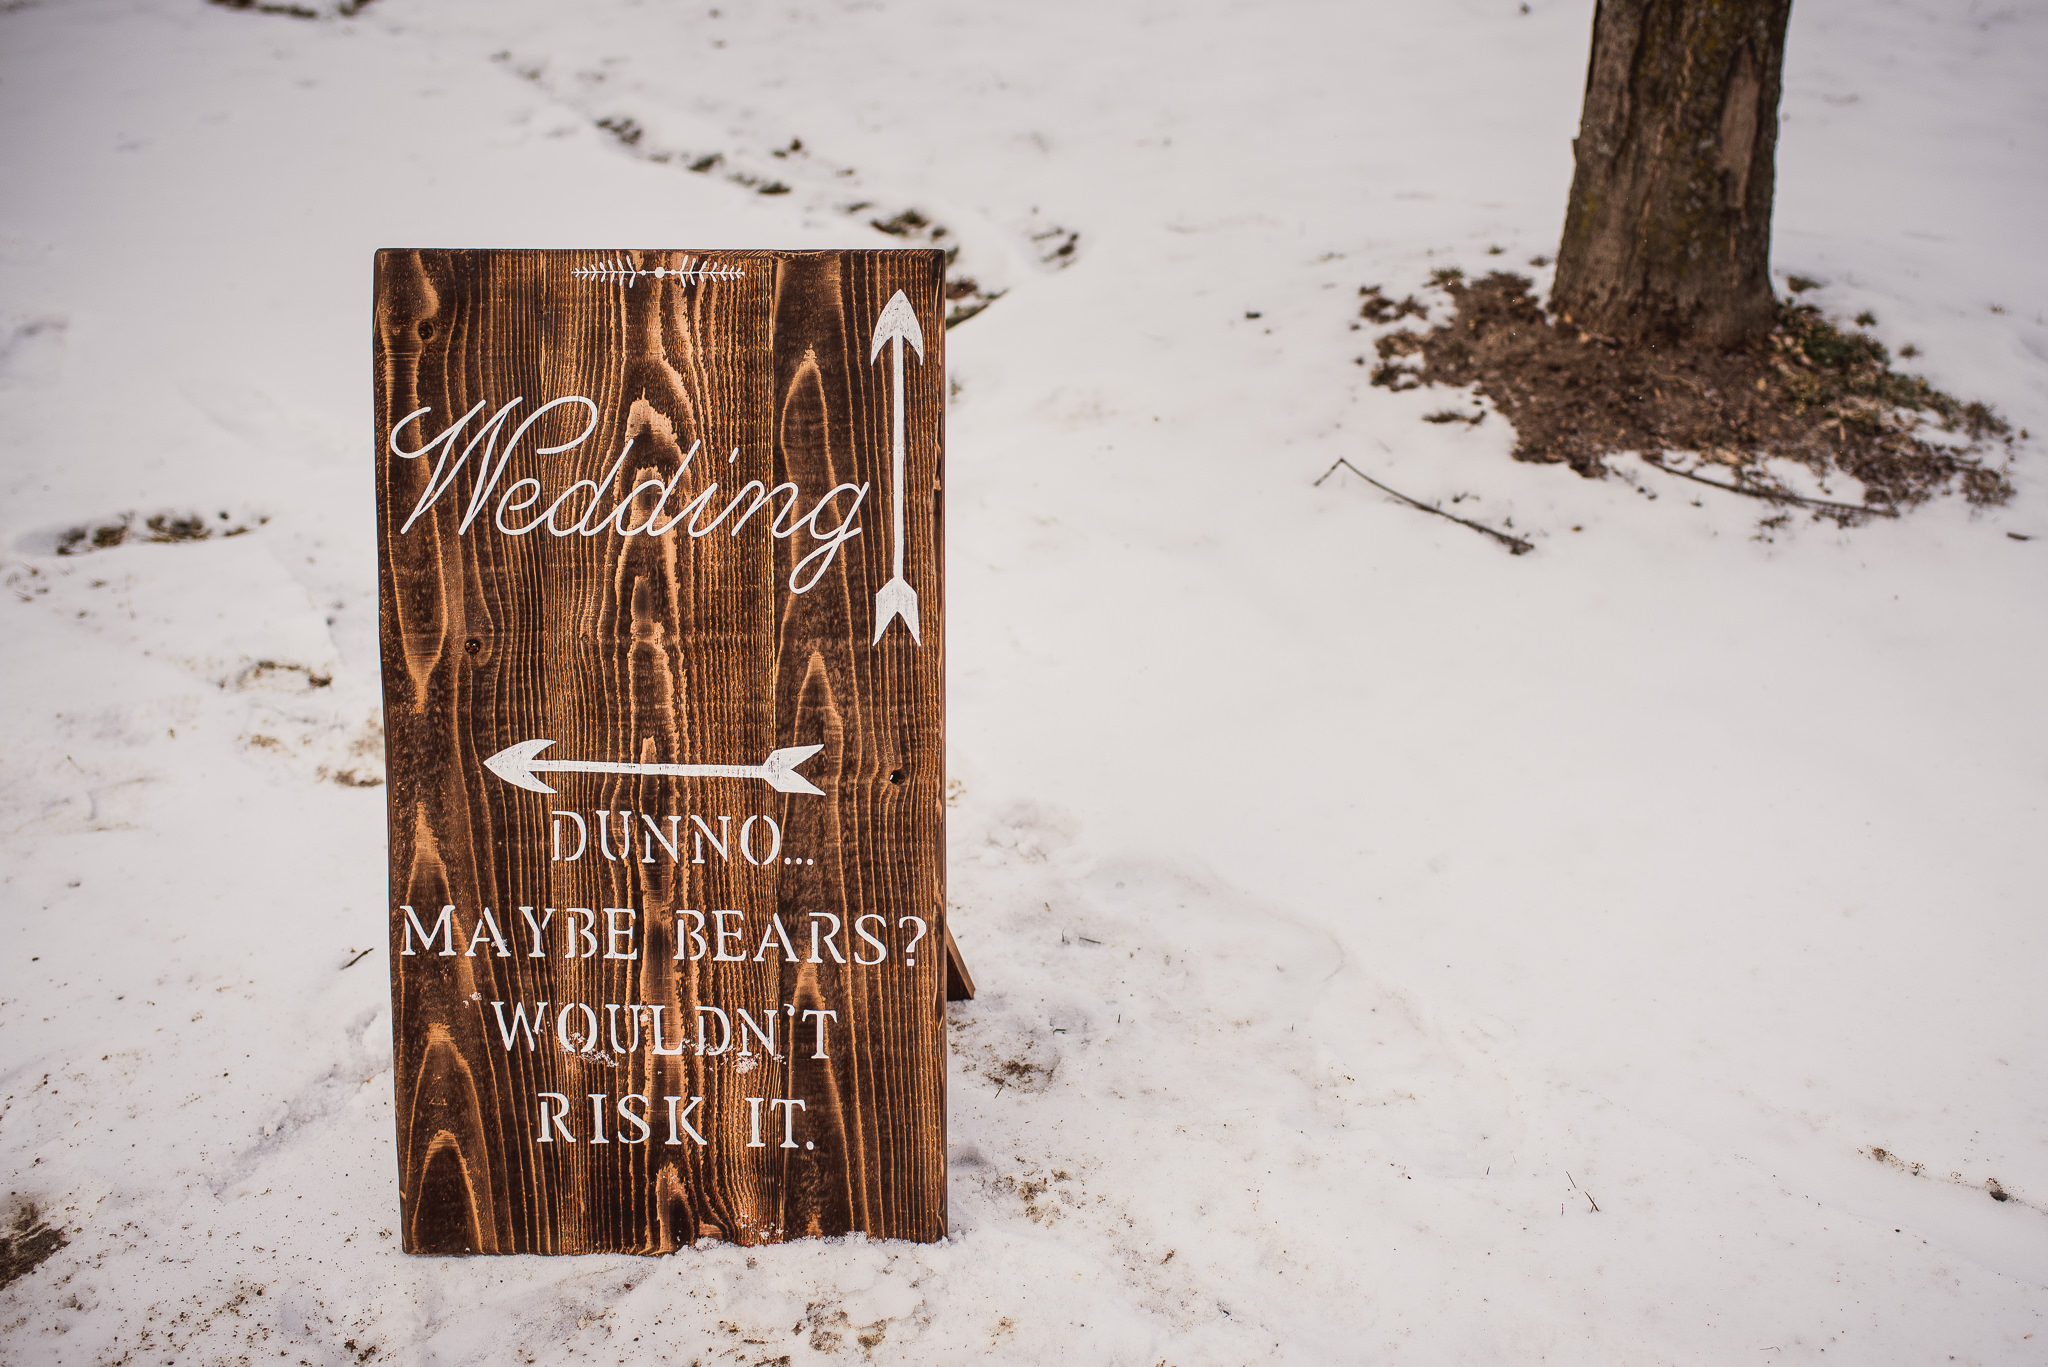 kortright center winter wedding photos 124 - Kortright Center Winter Wedding Photos